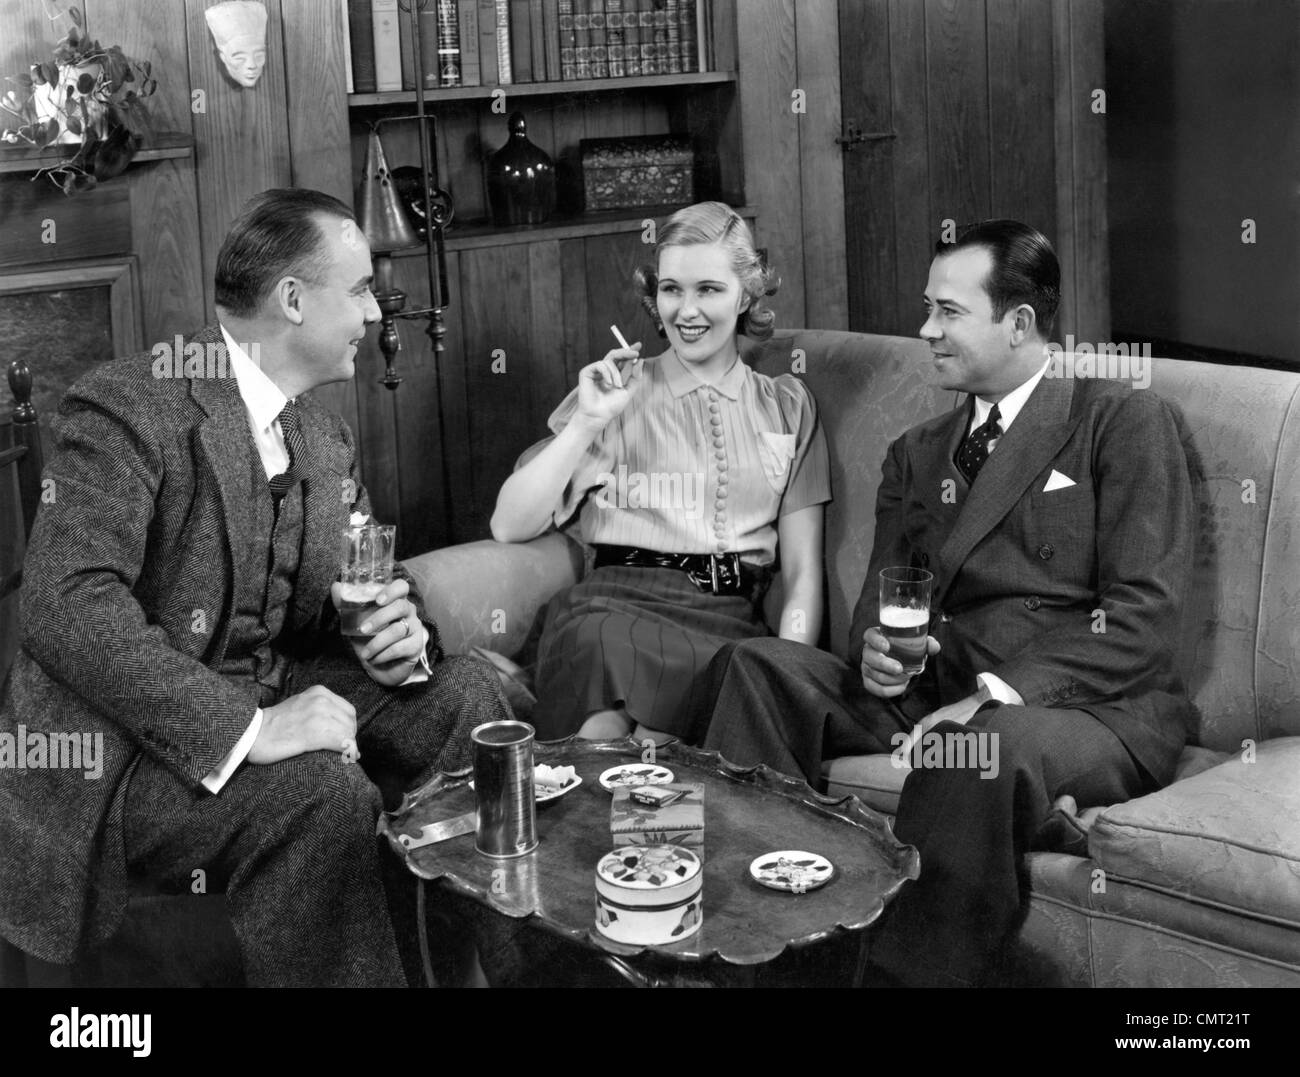 1940s TWO MEN AND ONE WOMAN SOCIAL GROUP SITTING ON COUCH DRINKING BEER SMOKING CIGARETTES TALKING Stock Photo